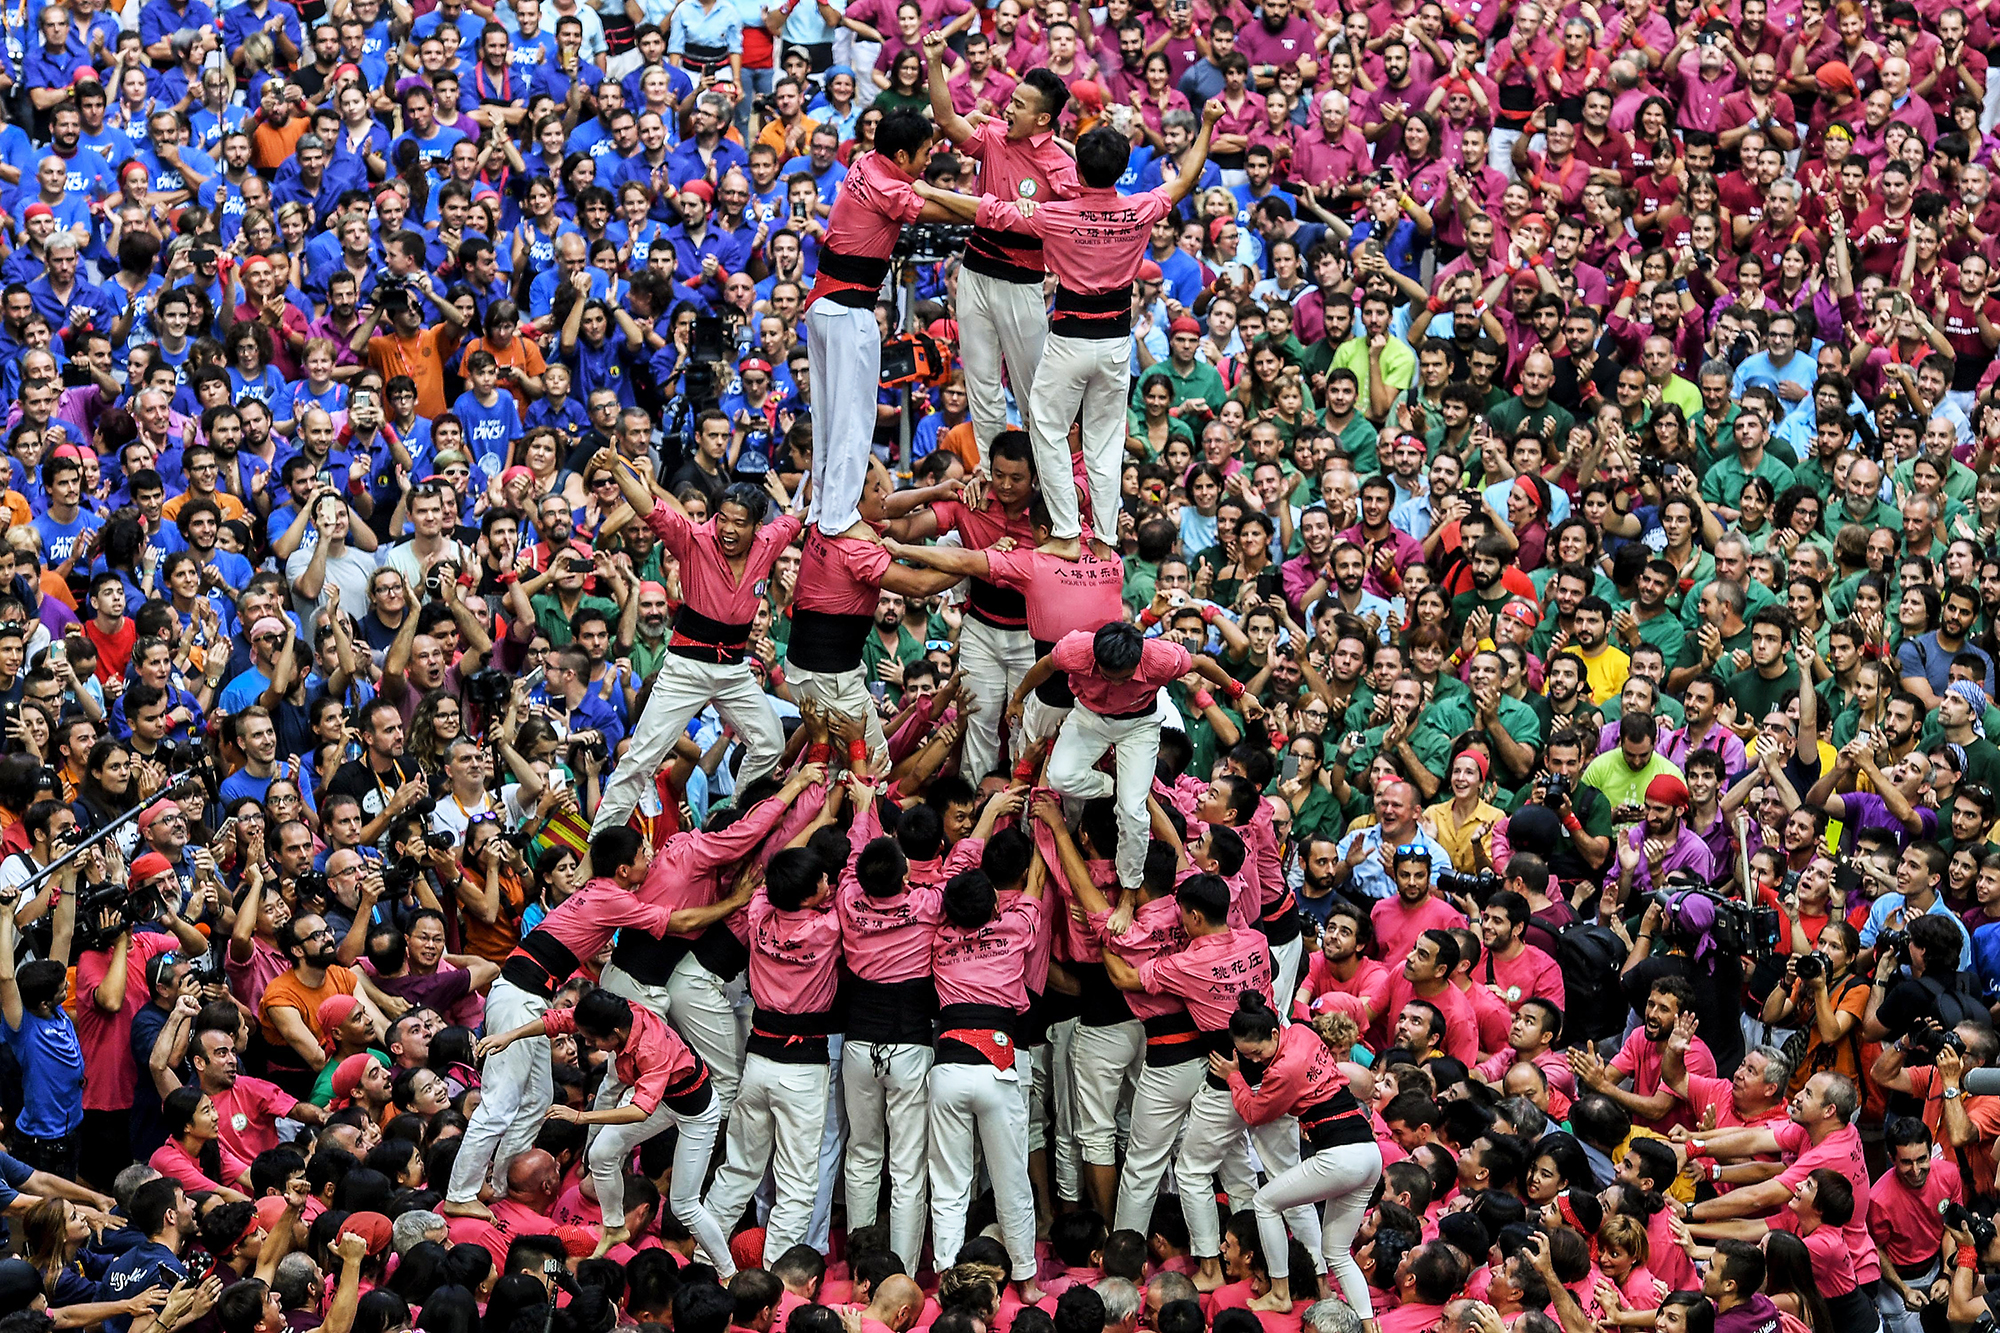 Xiquets de Hanghzou  celebrate after building a human tower in Tarragona, Spain, on Oct. 1, 2016.